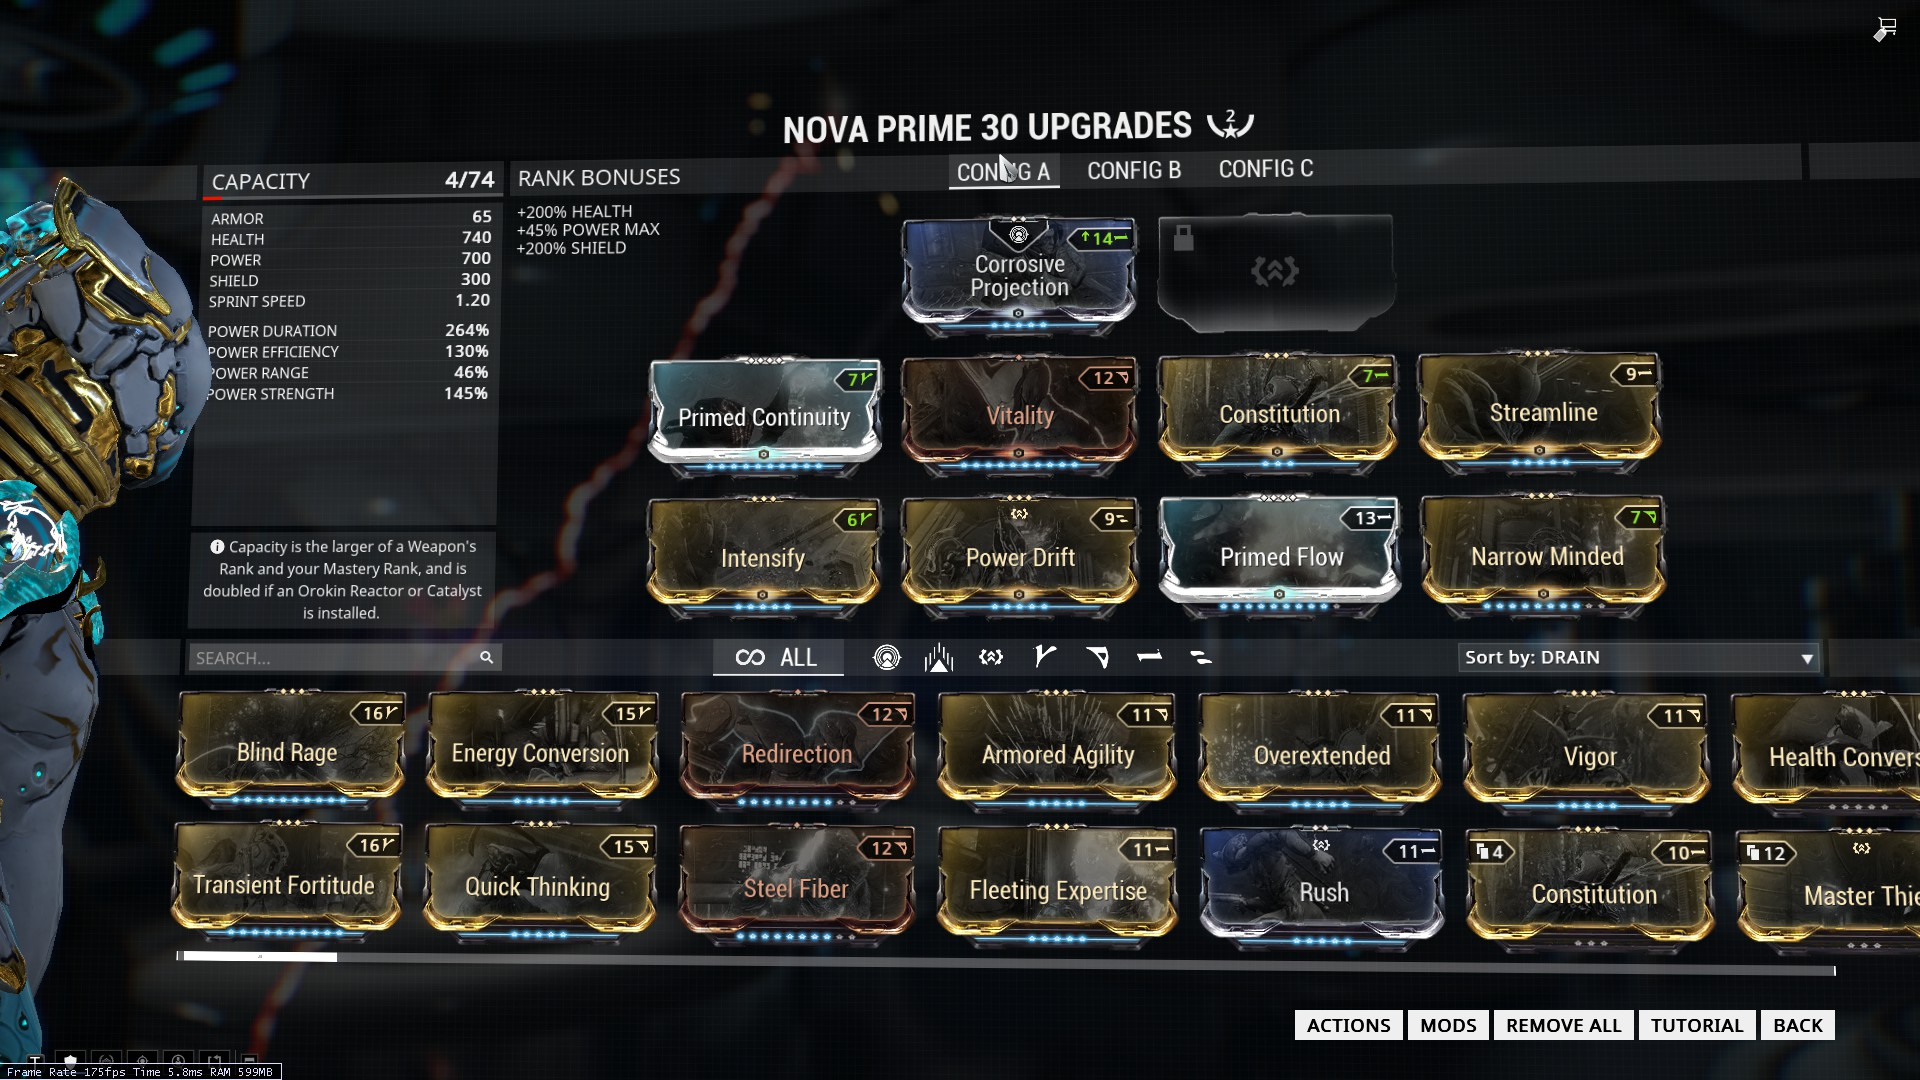 Steam Community Guide Nova Prime 2 Forma I am here bringing you juicer builds for nova! nova prime 2 forma